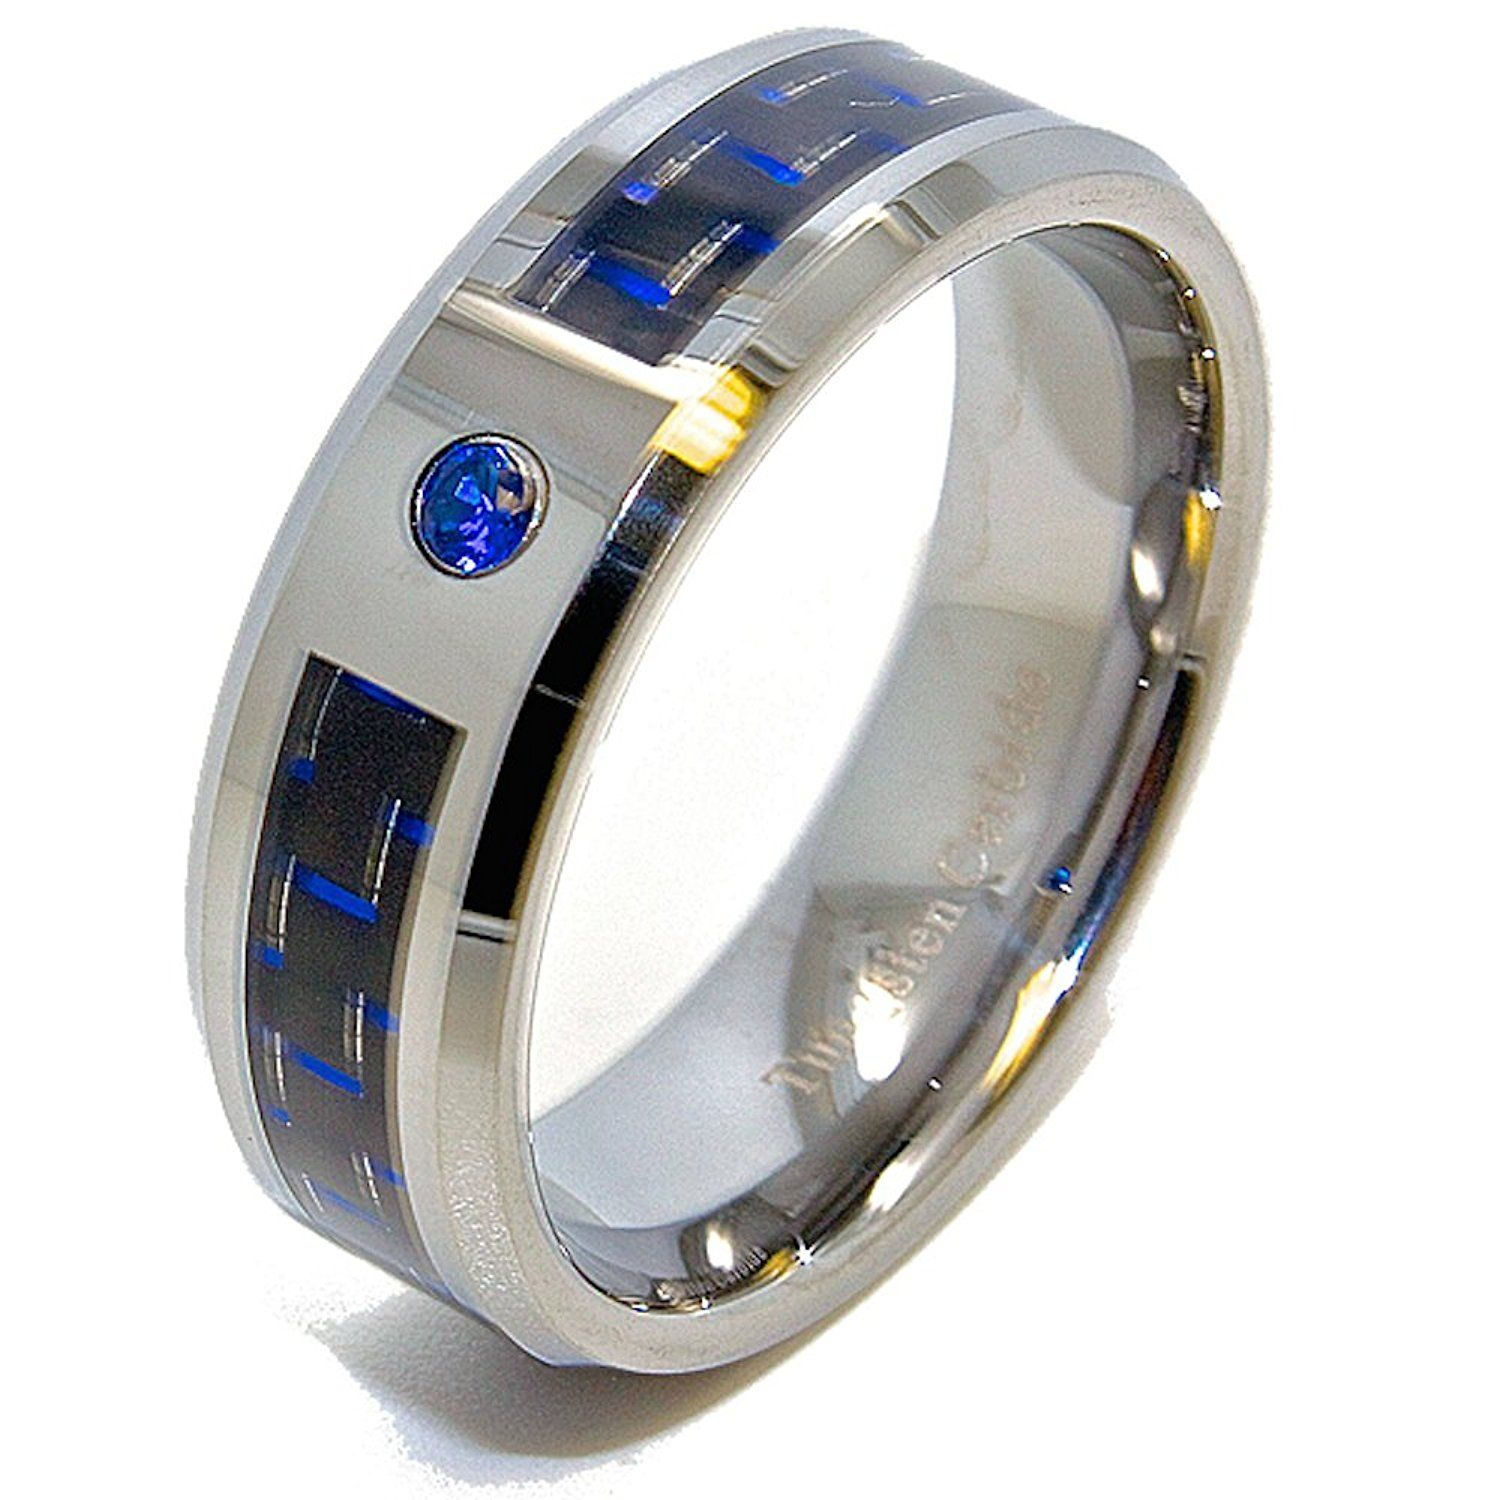 carbide niv white background tungsten black s rings idea ring wedding affordable best awesome blue fiber and bling of carbon